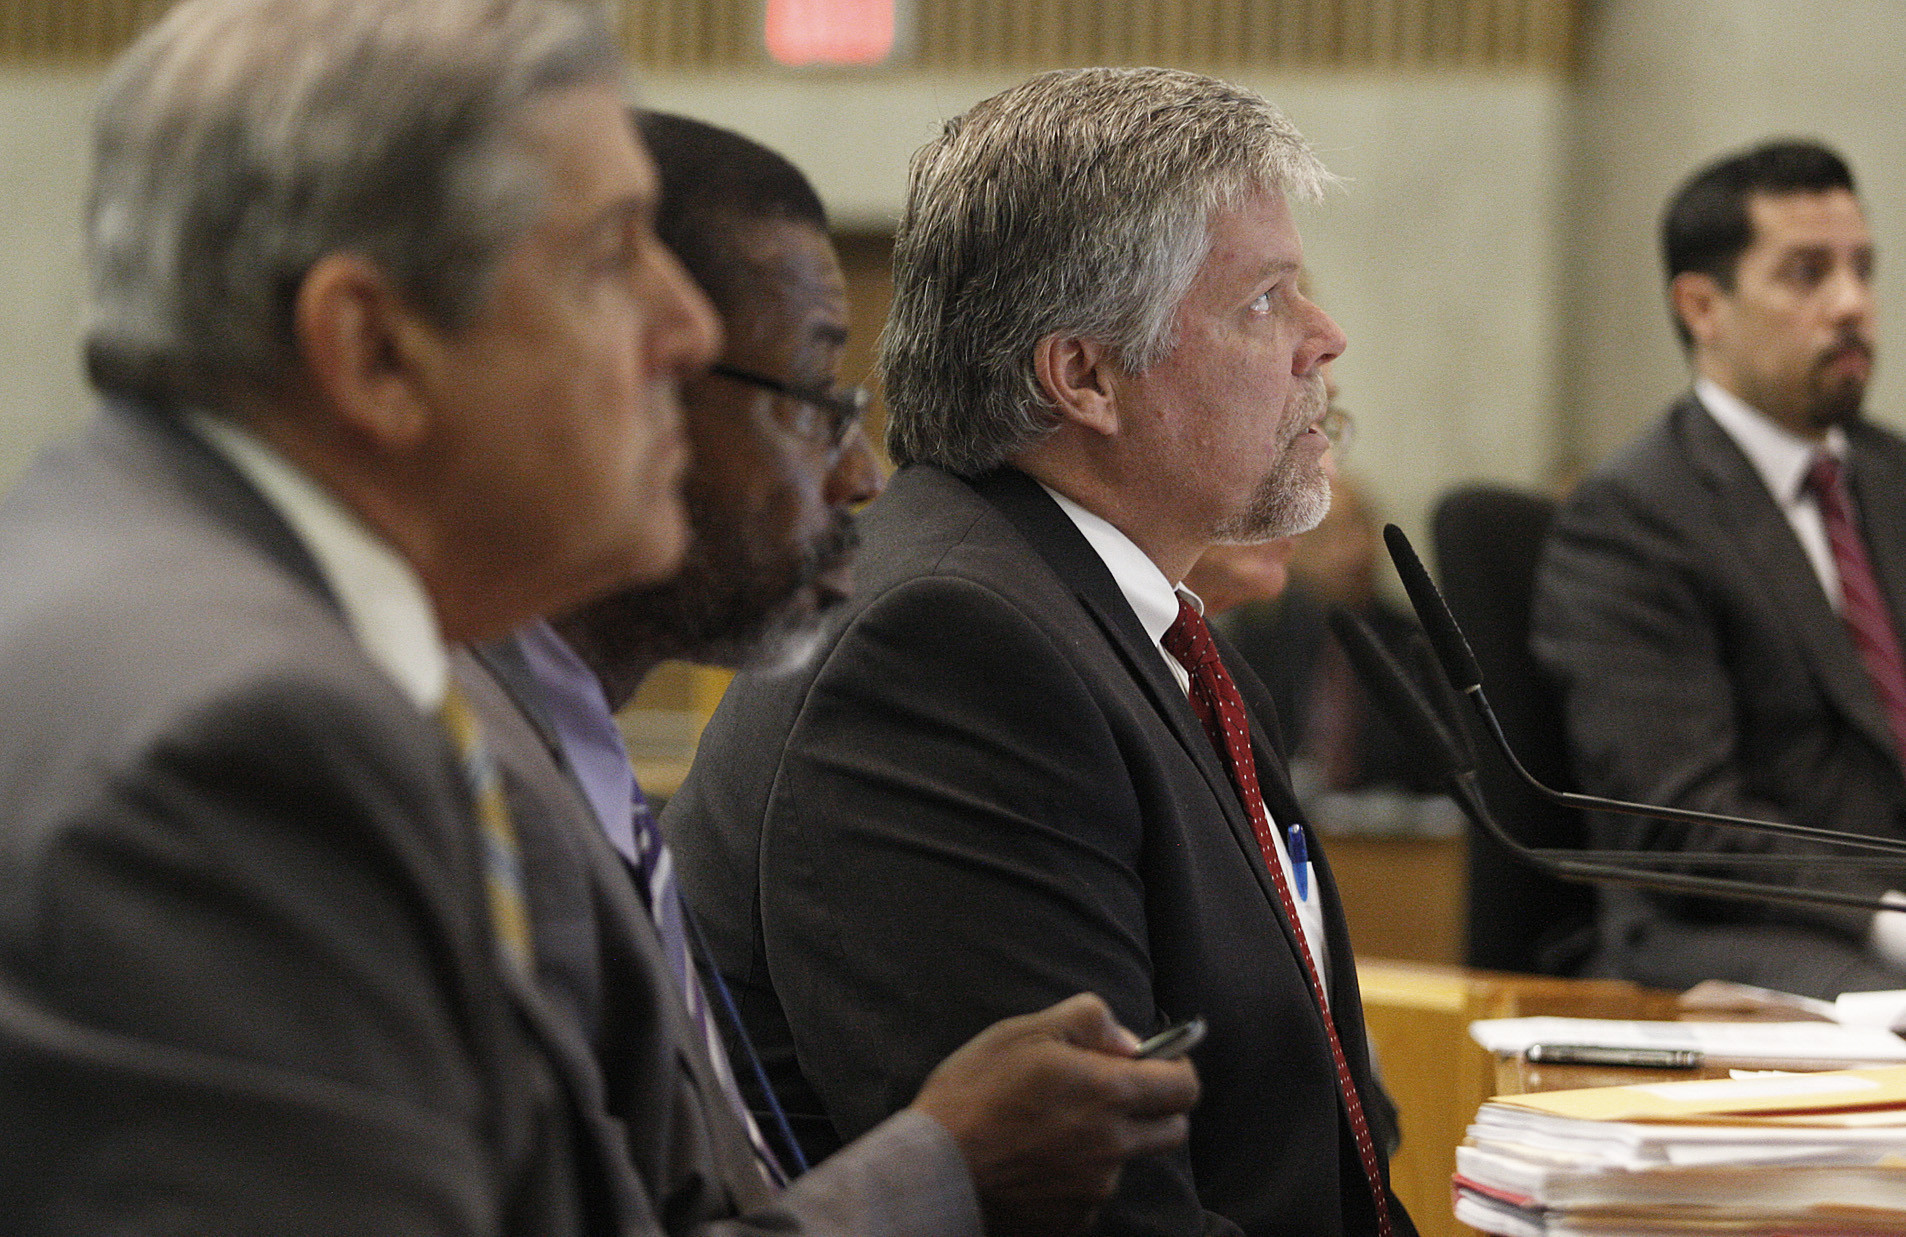 a report on the los angeles probation county department A 500-page report presented at the los angeles county board of supervisors meeting on tuesday recommended sweeping changes to the county's probation department.